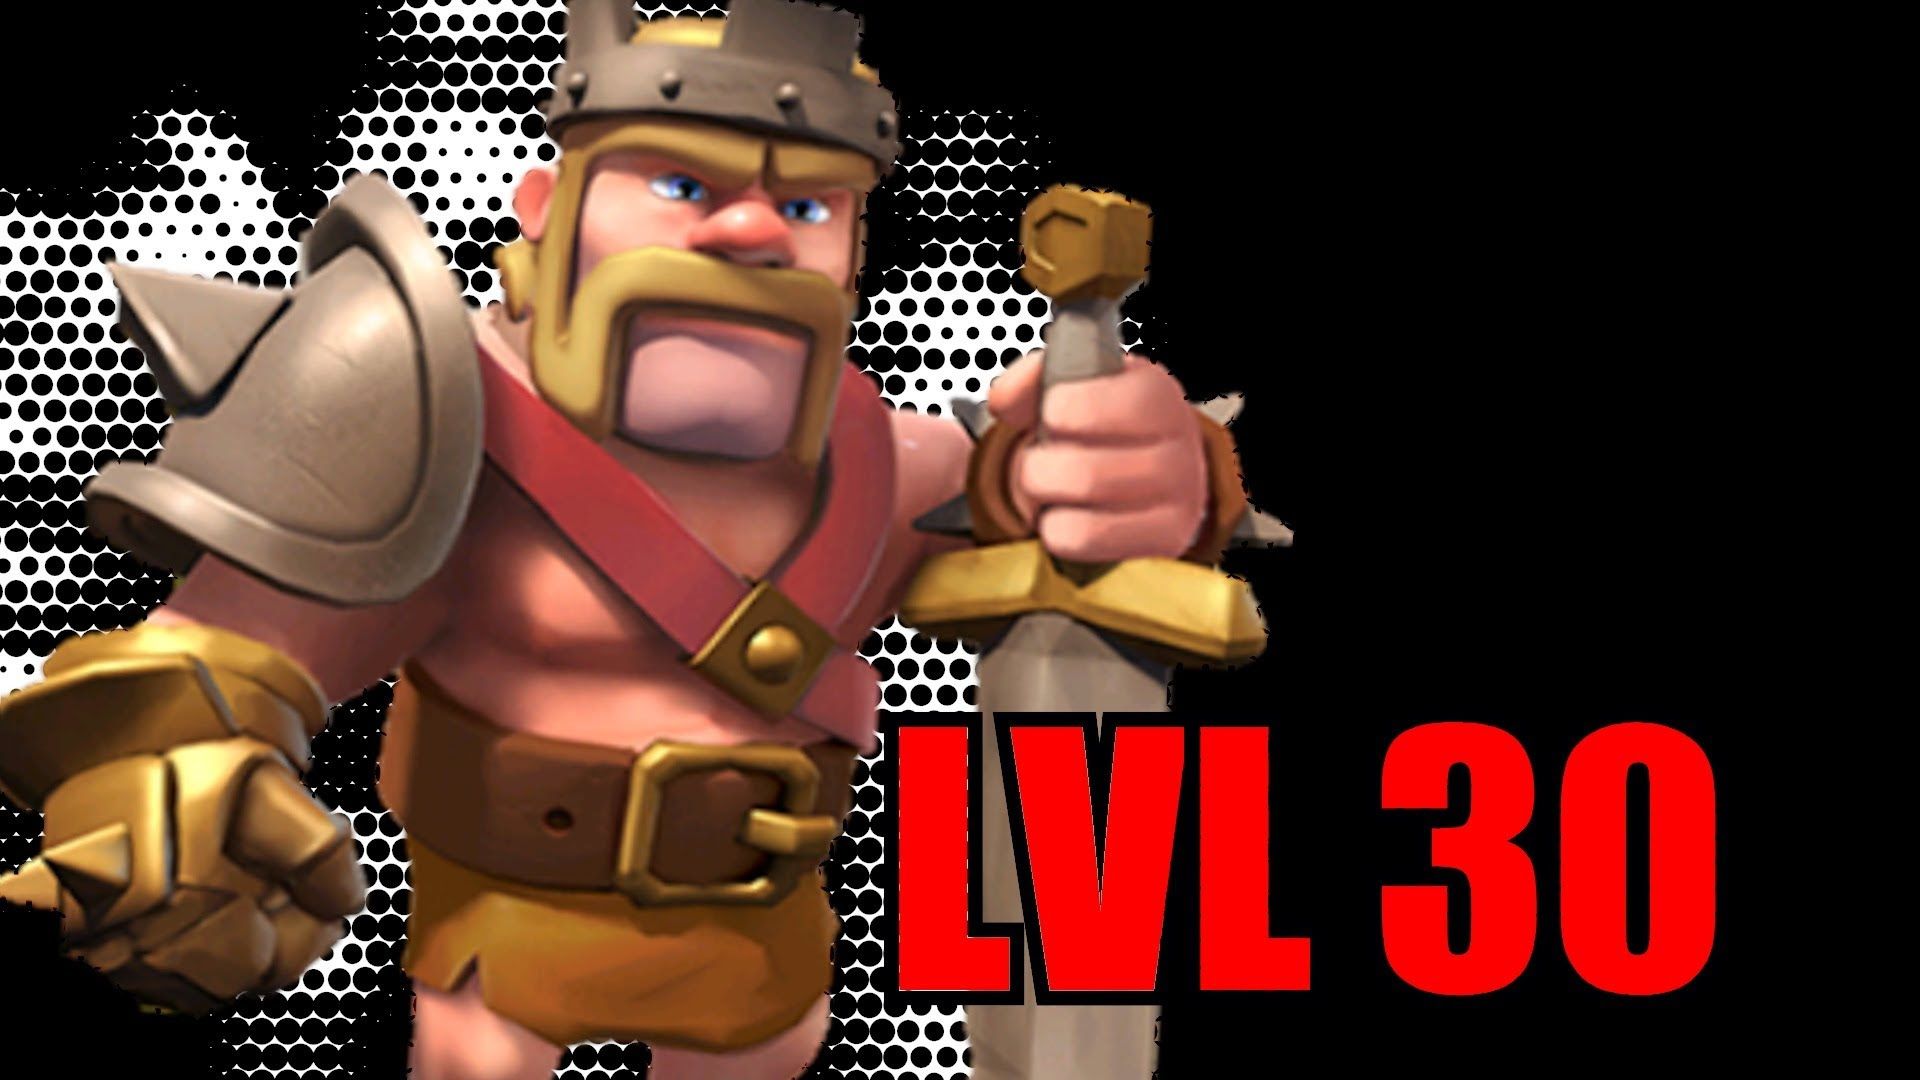 Clash Of Clans Barbarian King Levels Rdata